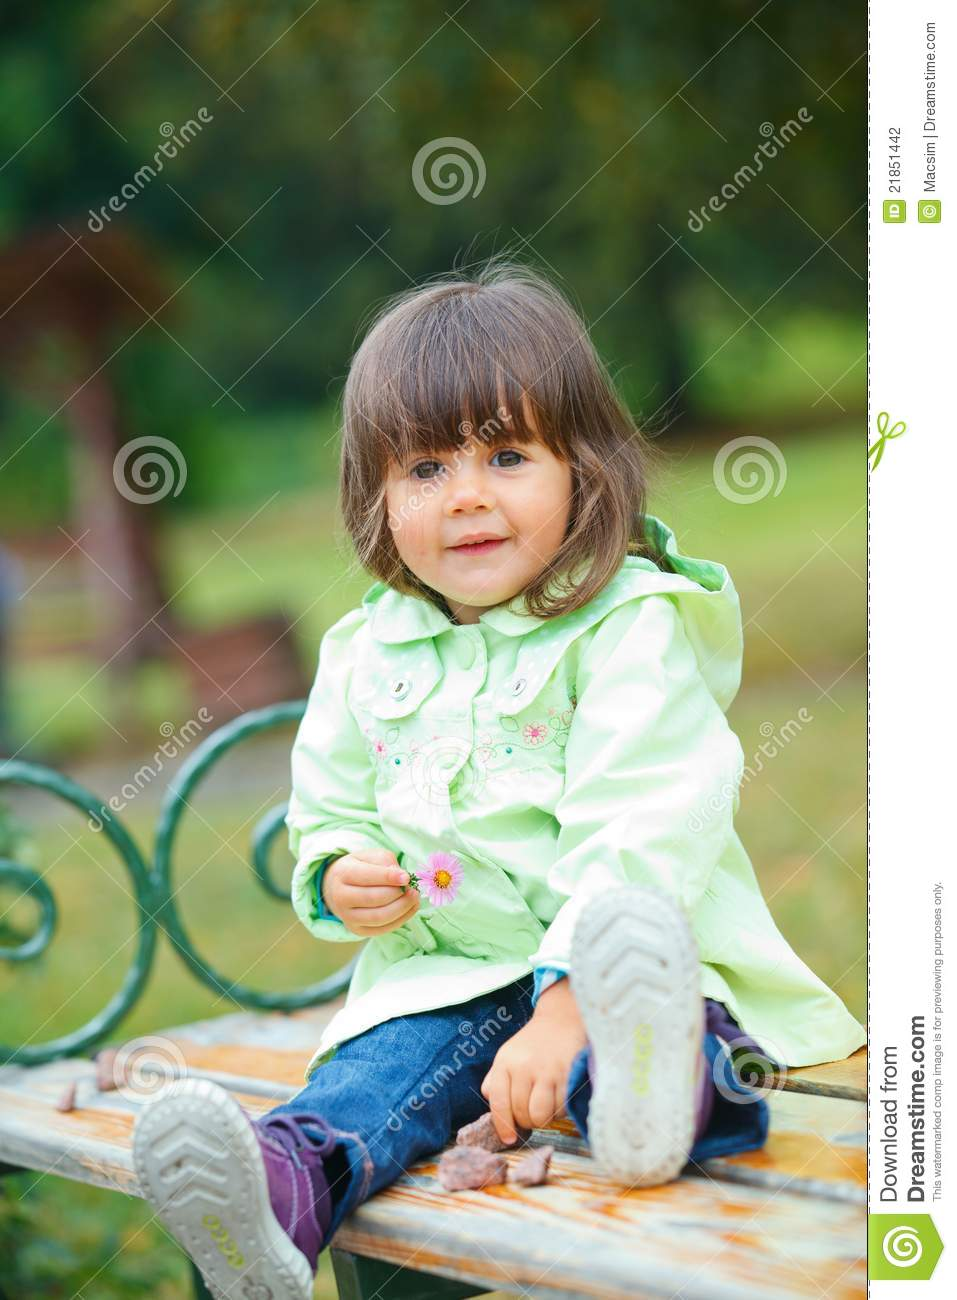 Little Girl Sitting On A Bench In The Park Stock